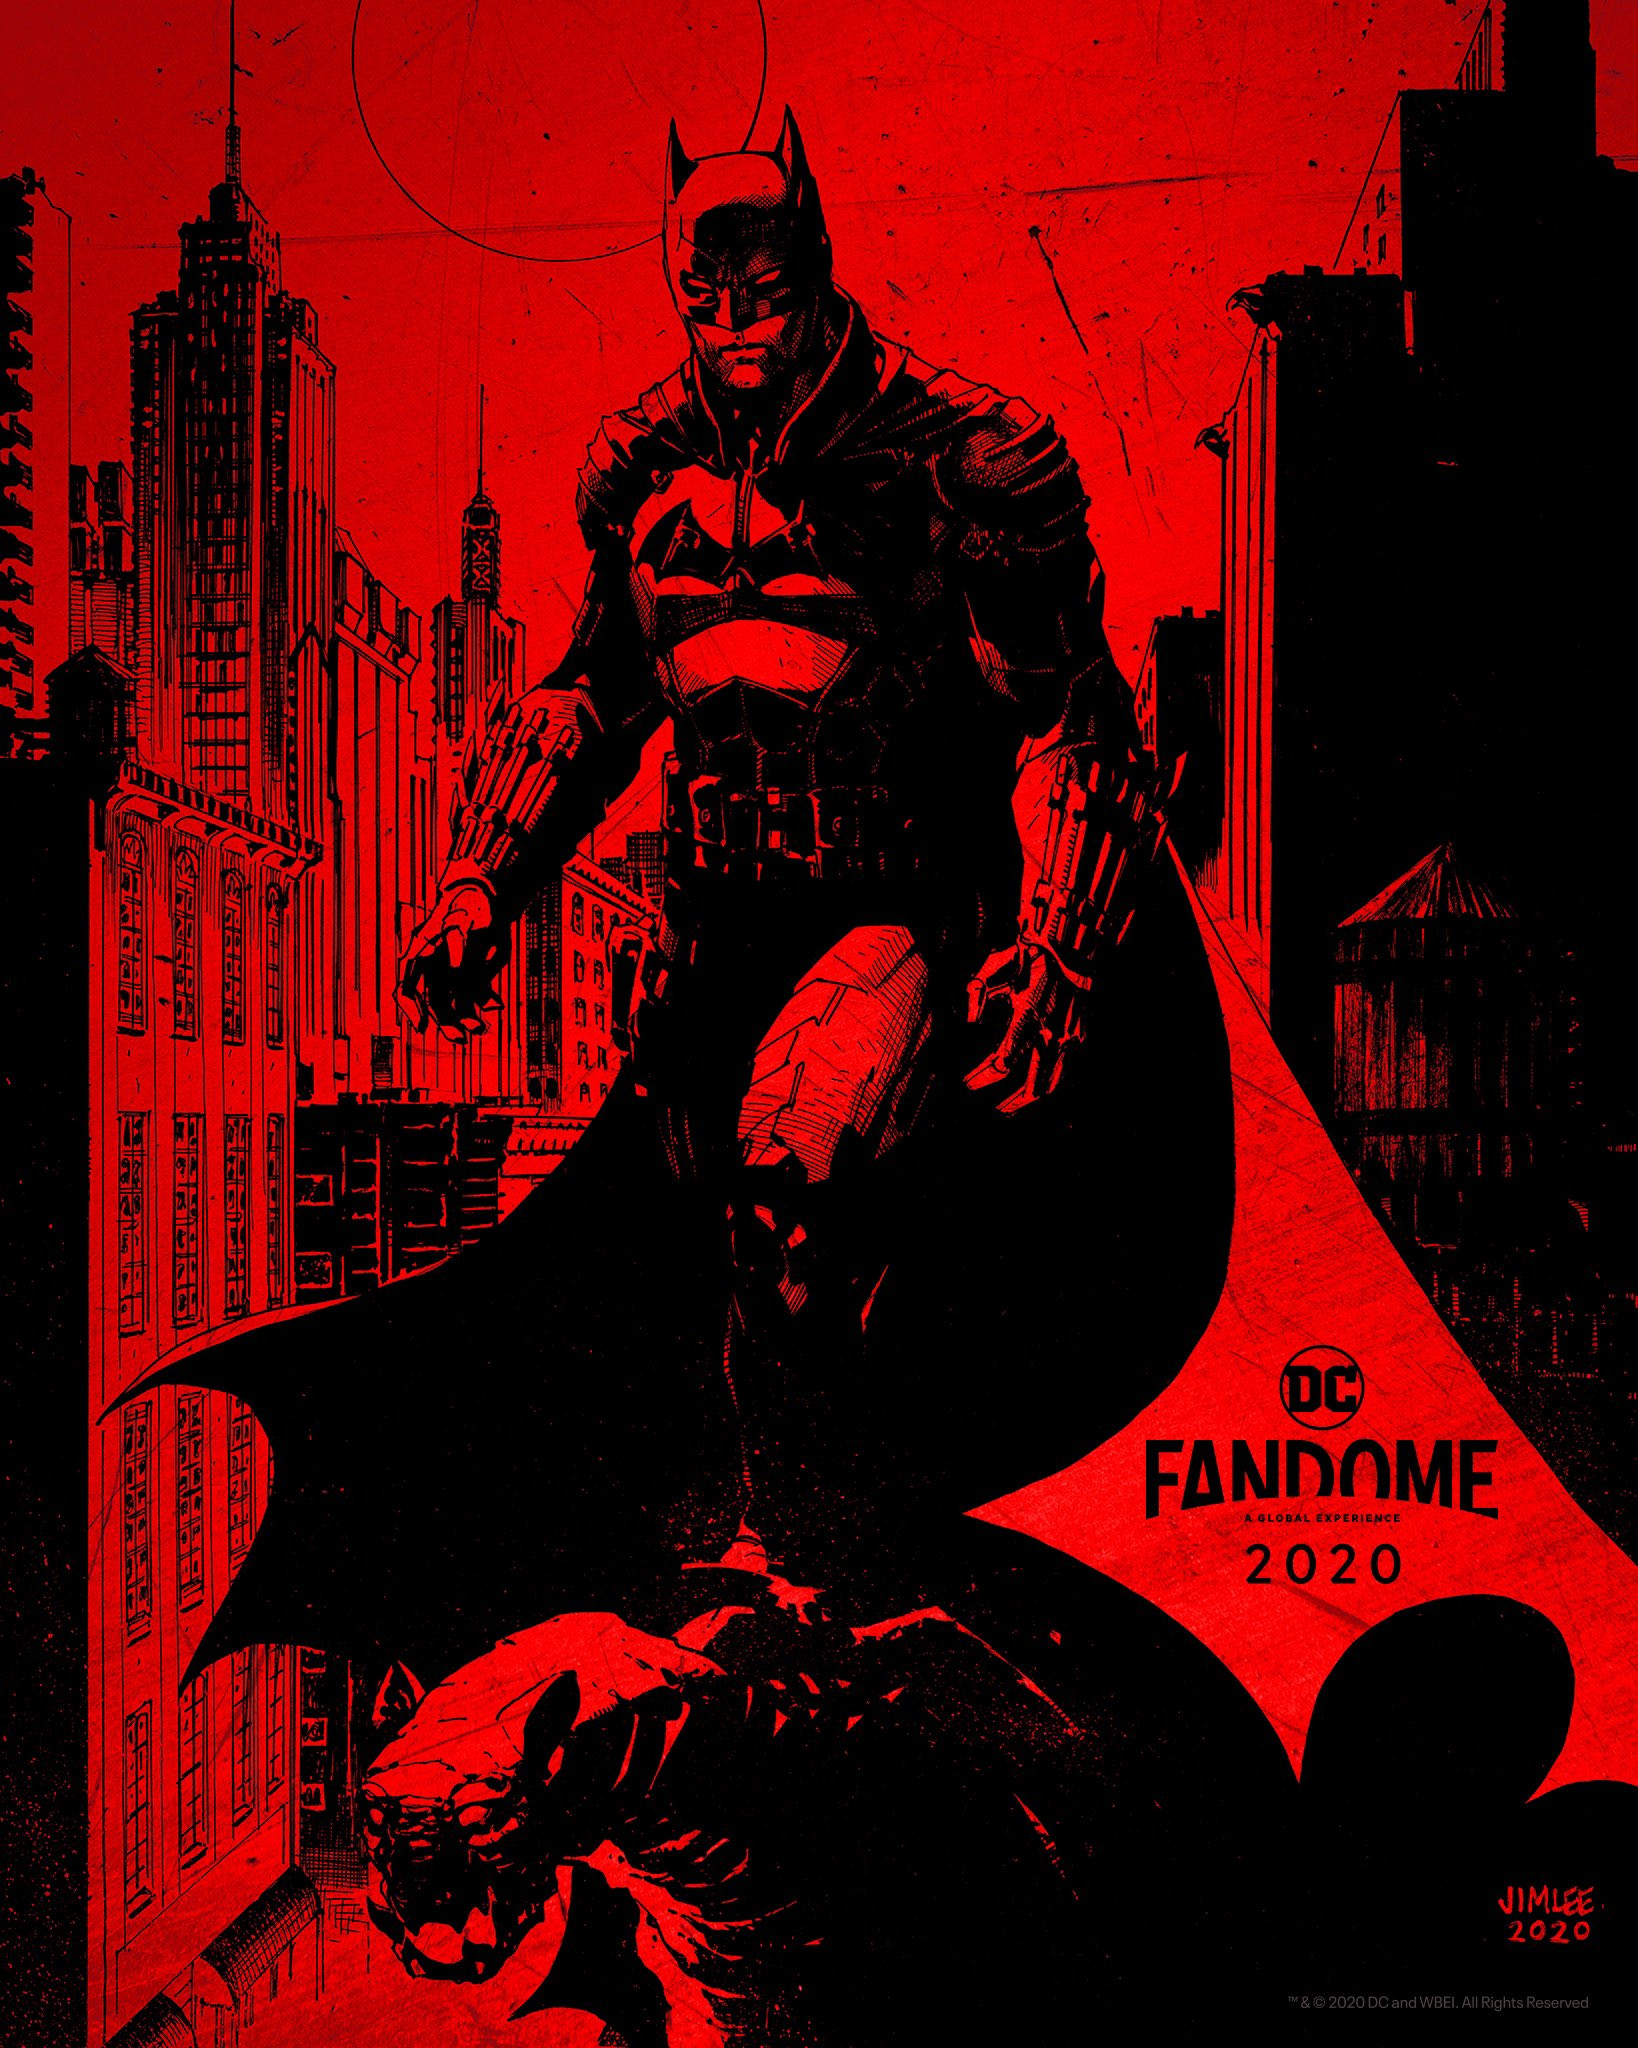 The Batman Robert Pattinson DC FanDome poster